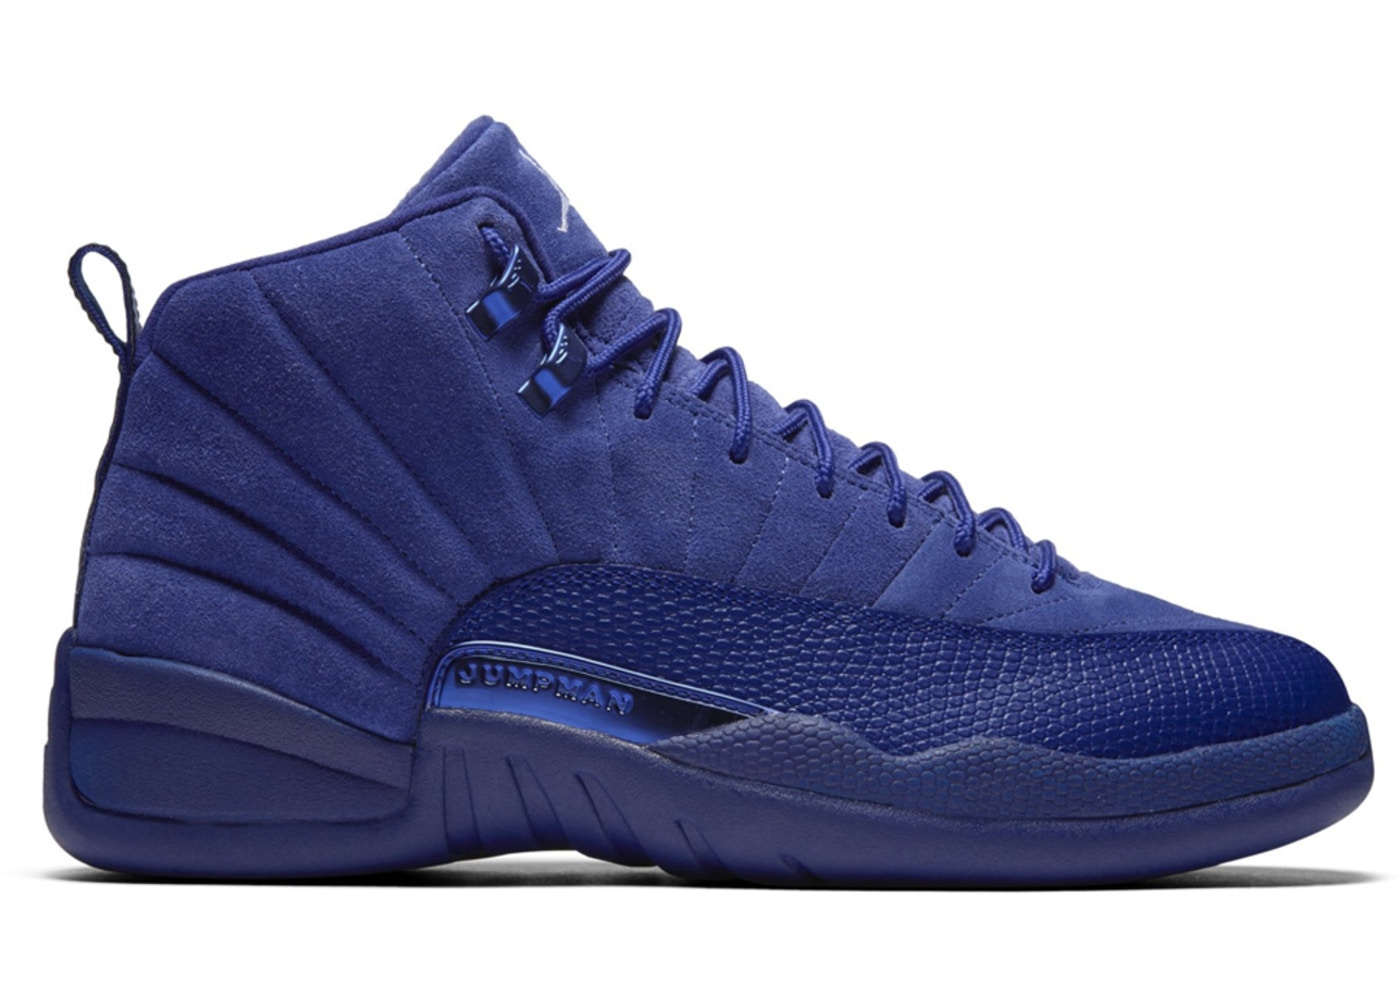 6ebed08b9e3c Jordan 12 Retro Deep Royal Blue - 130690-400